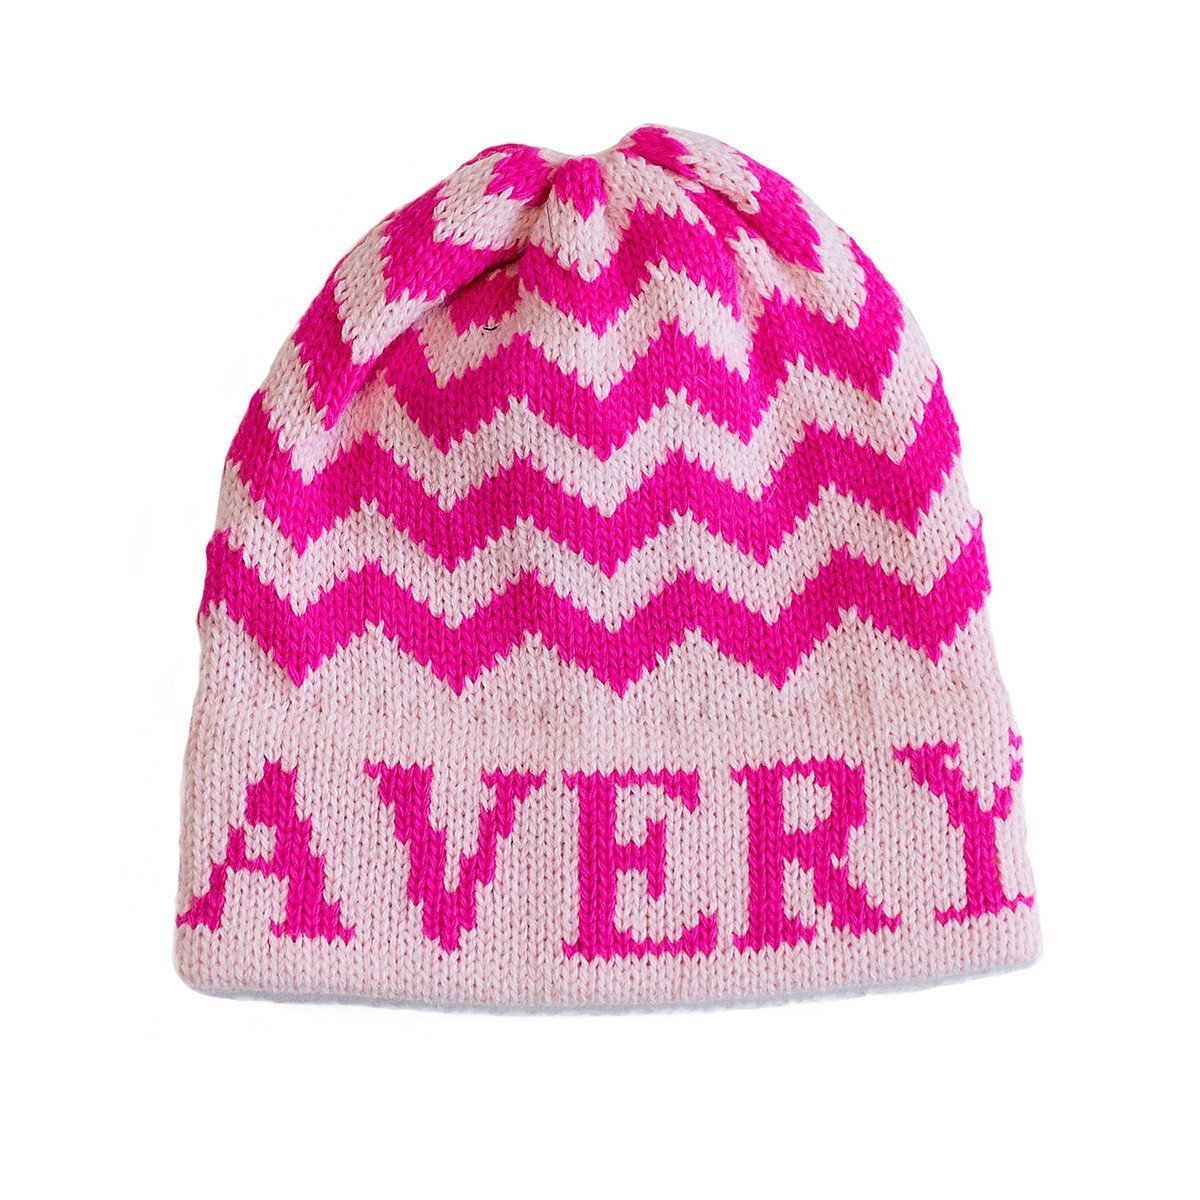 Chevron Personalized Knit Hat-Hats-Jack and Jill Boutique